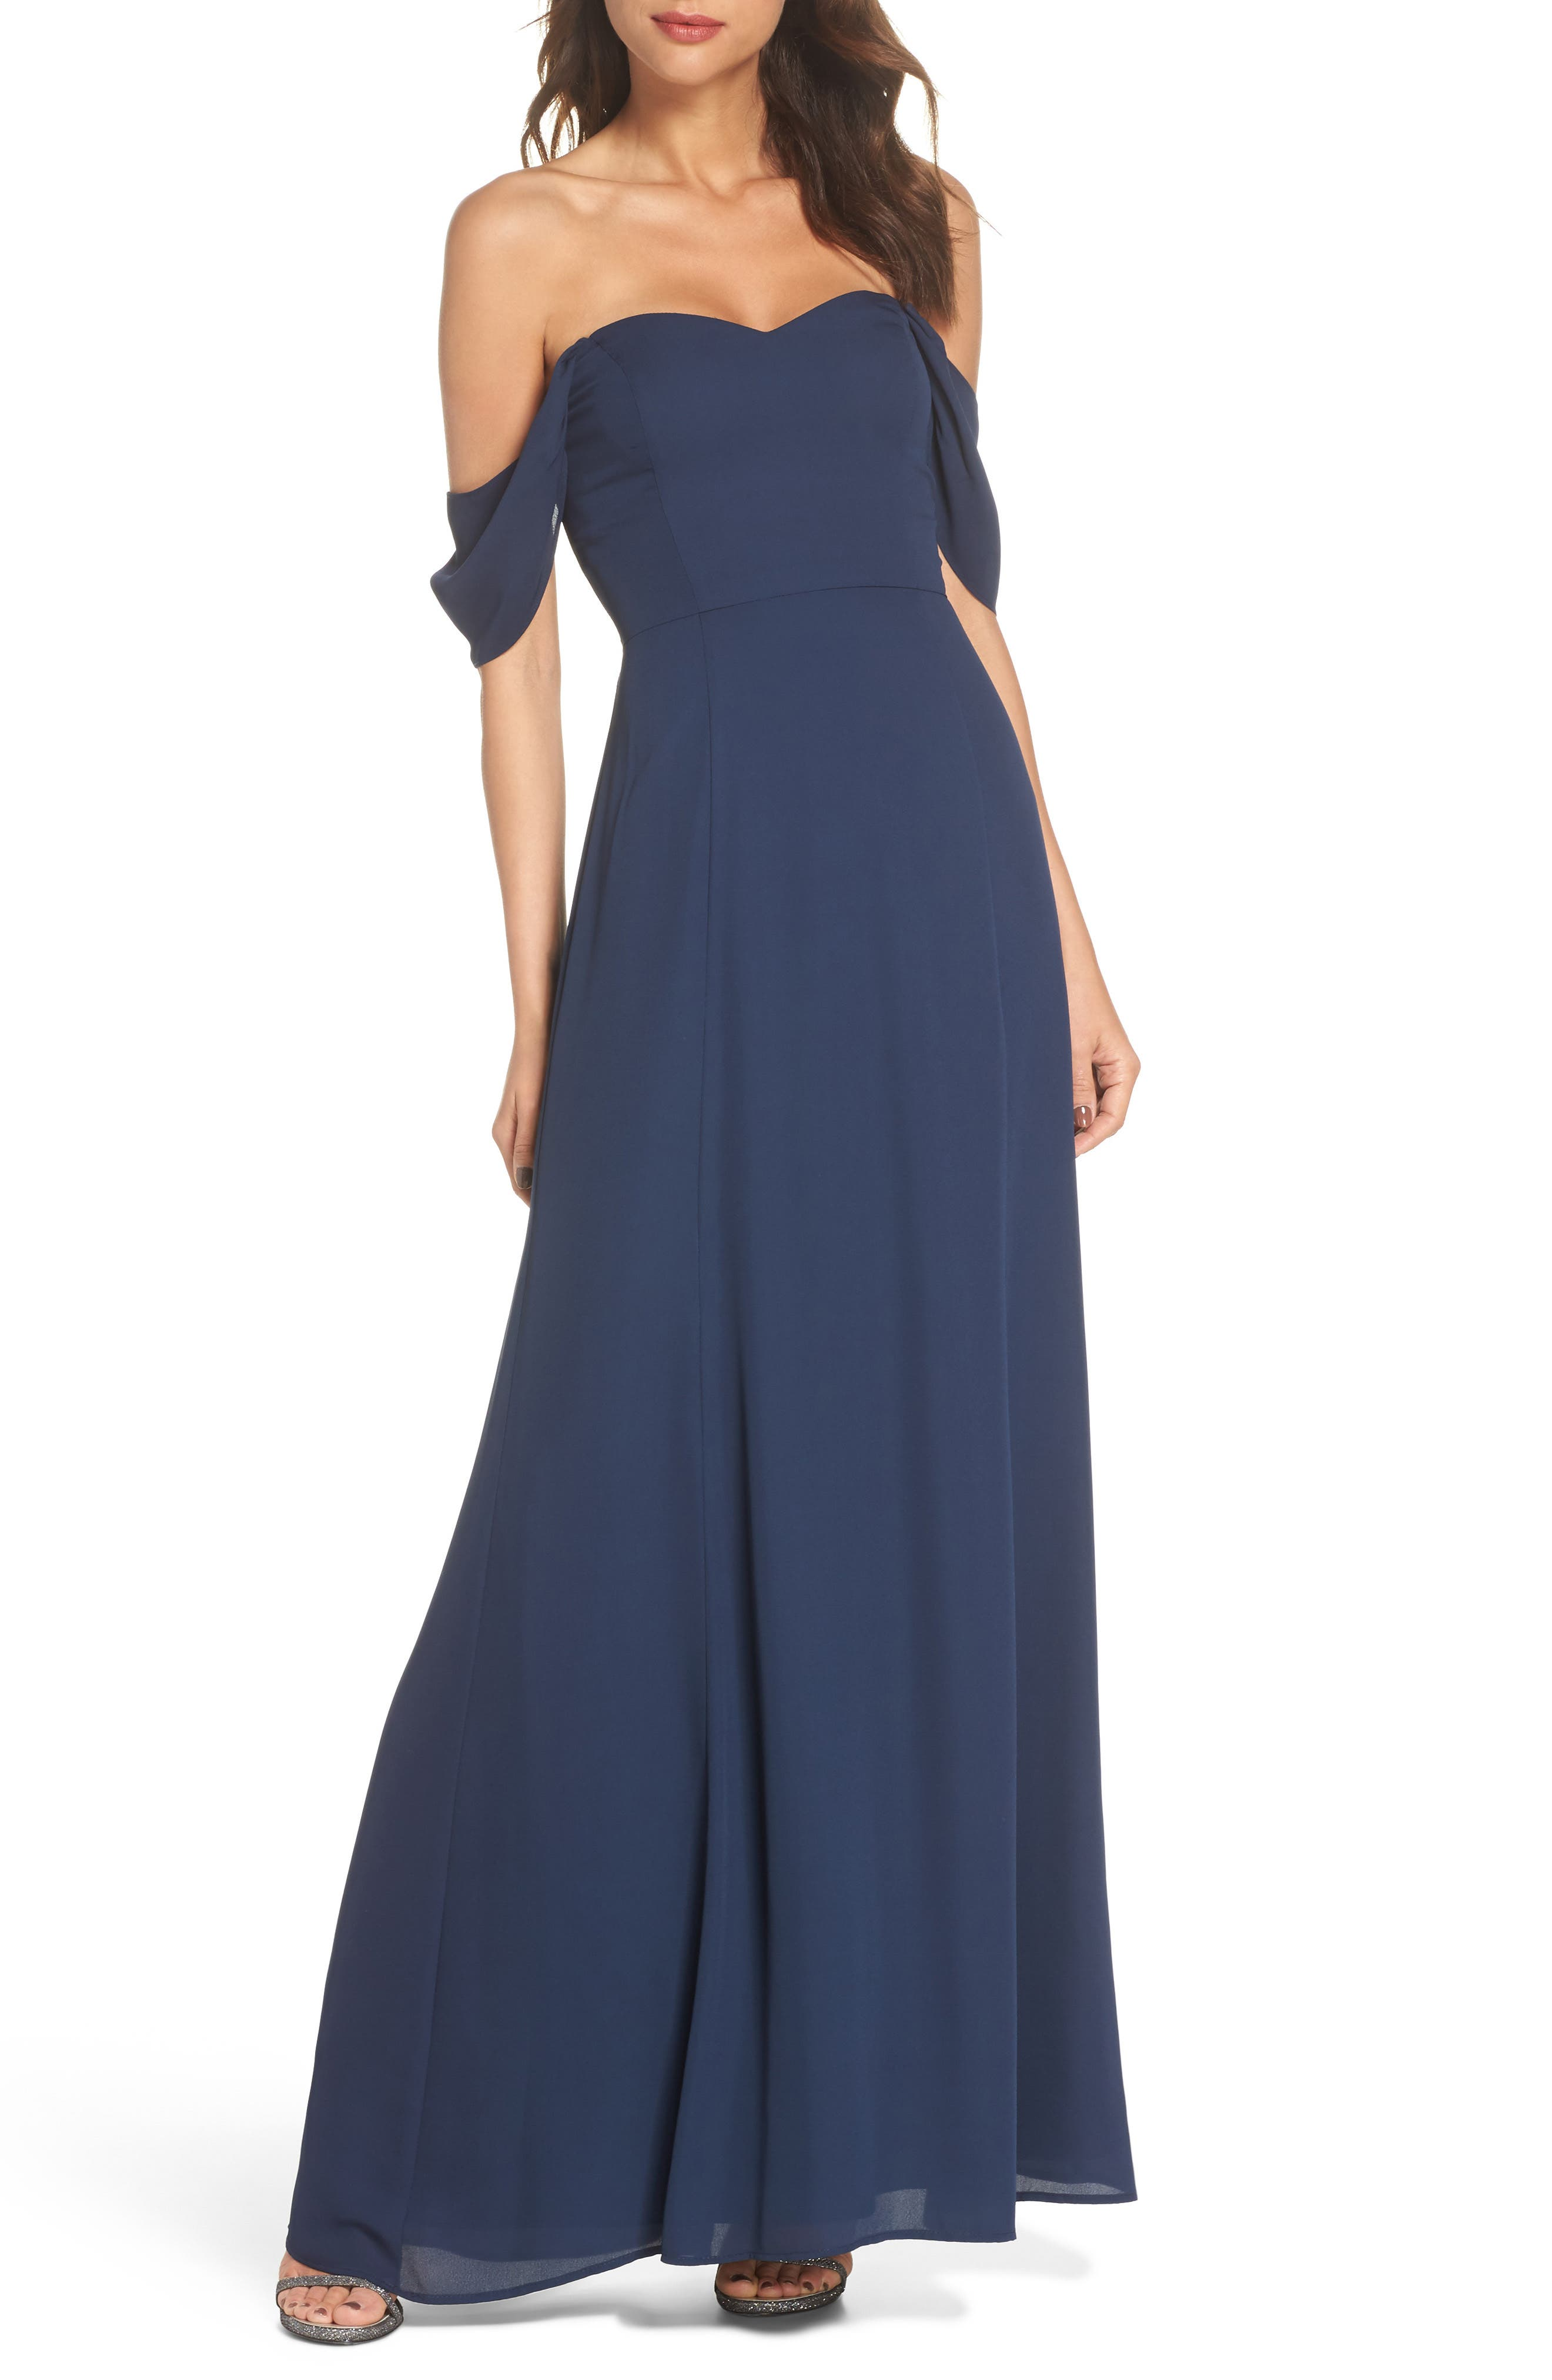 Rachel Off the Shoulder Gored Maxi Dress,                         Main,                         color, Navy